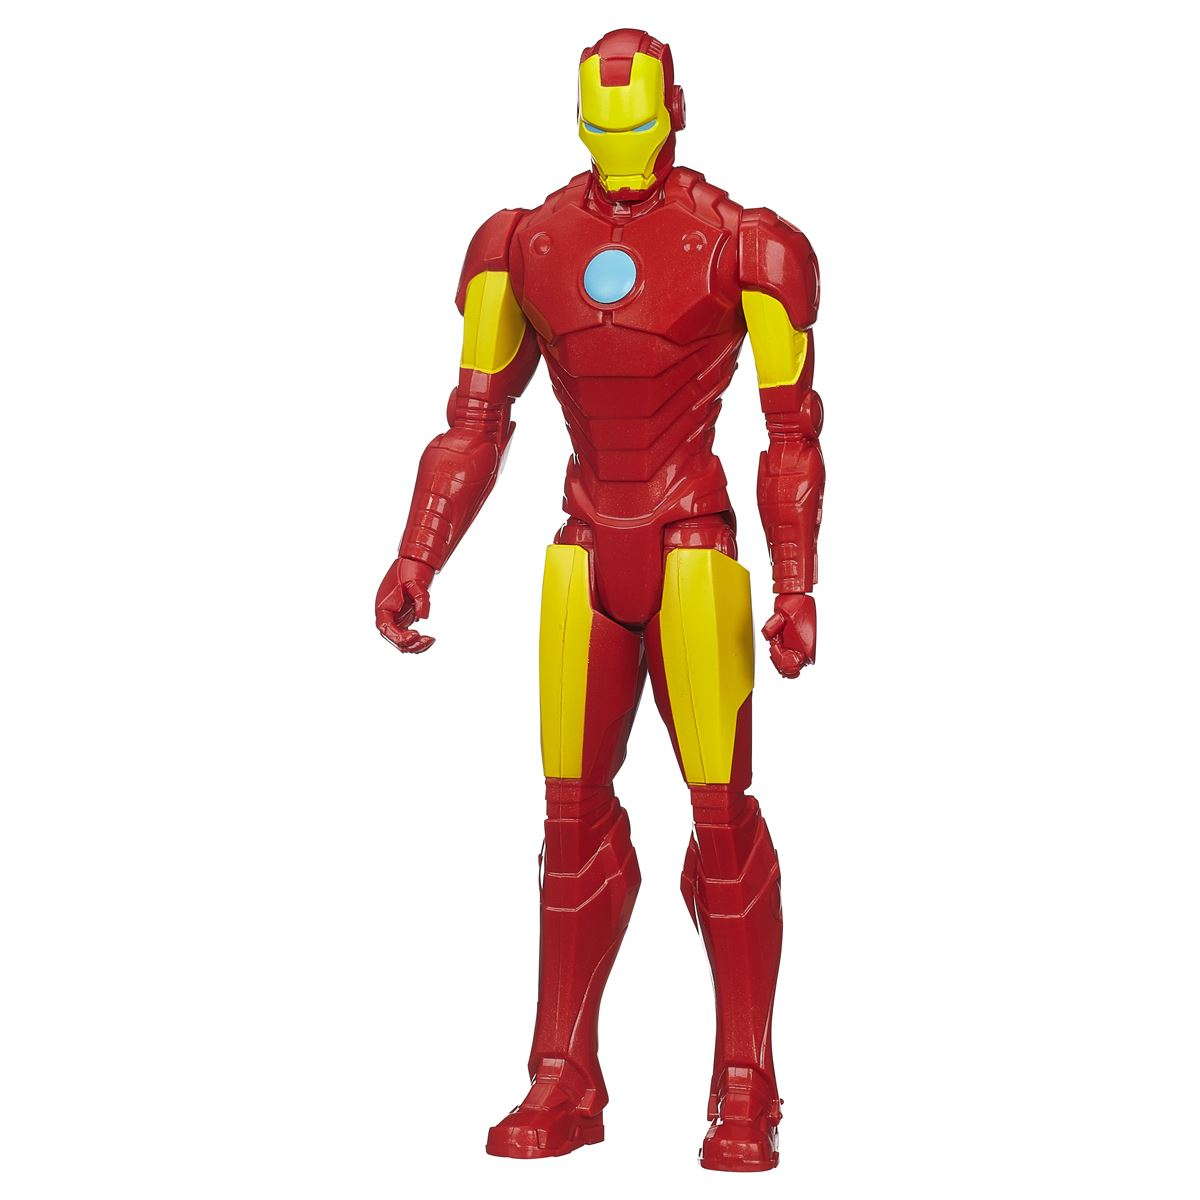 Avengers Iron Man 12' Solid